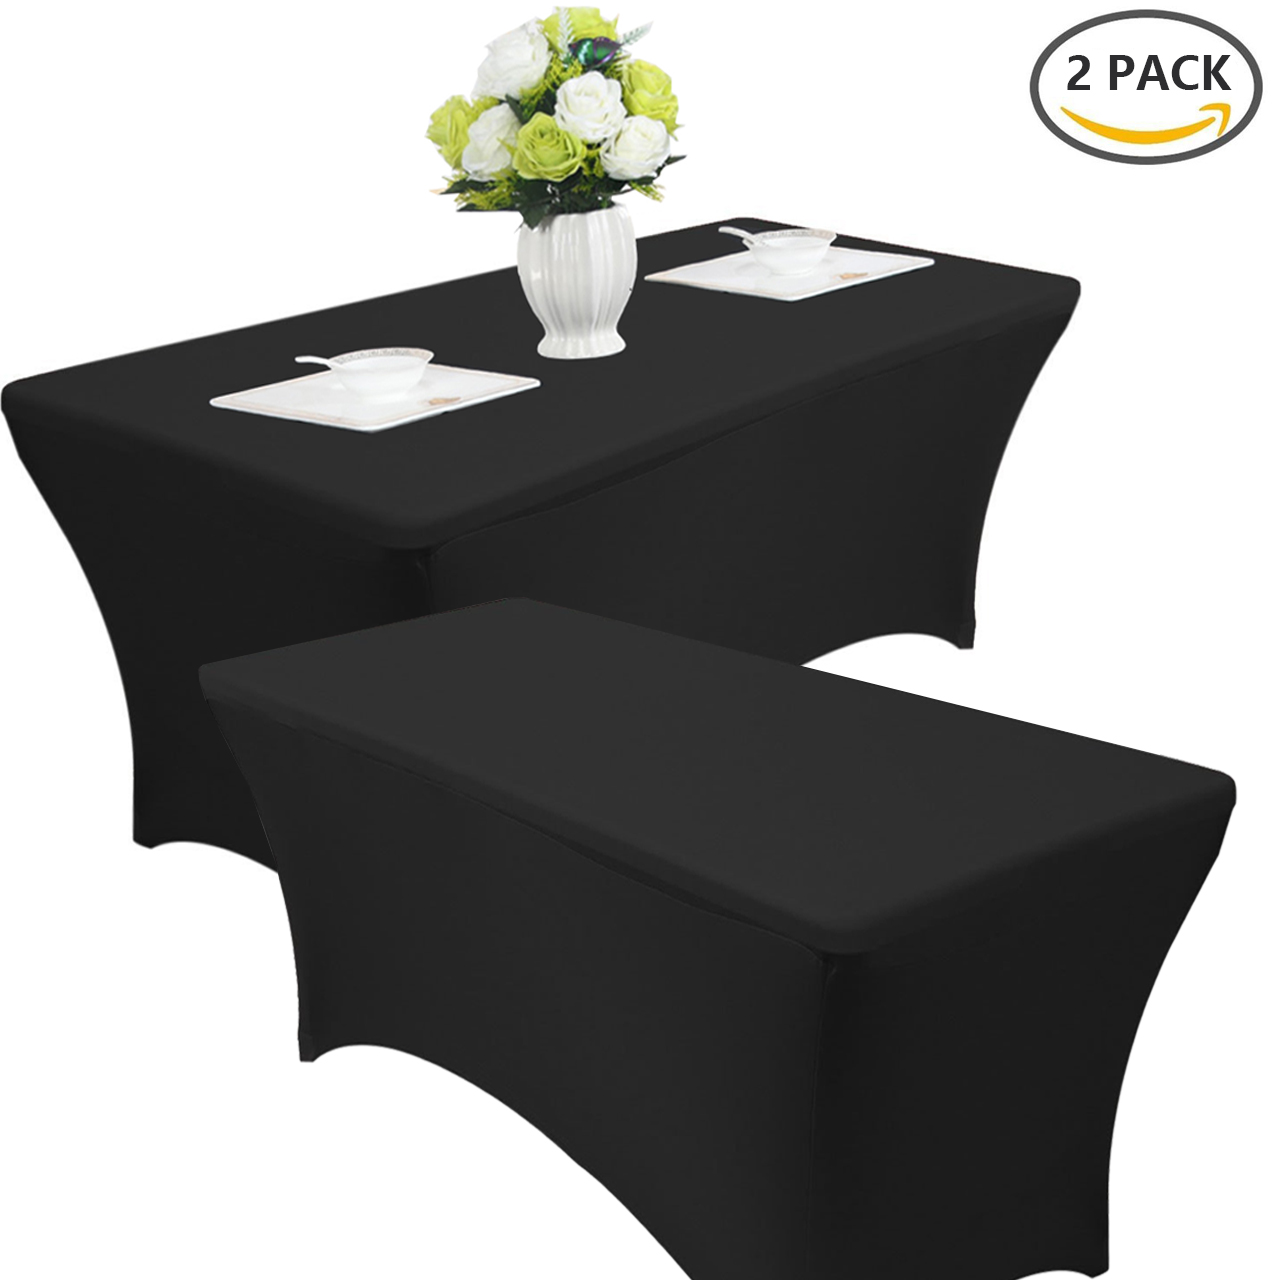 Reliancer Pack FTFTFT Rectangular Spandex Table Cover Four - Outdoor rectangular coffee table cover